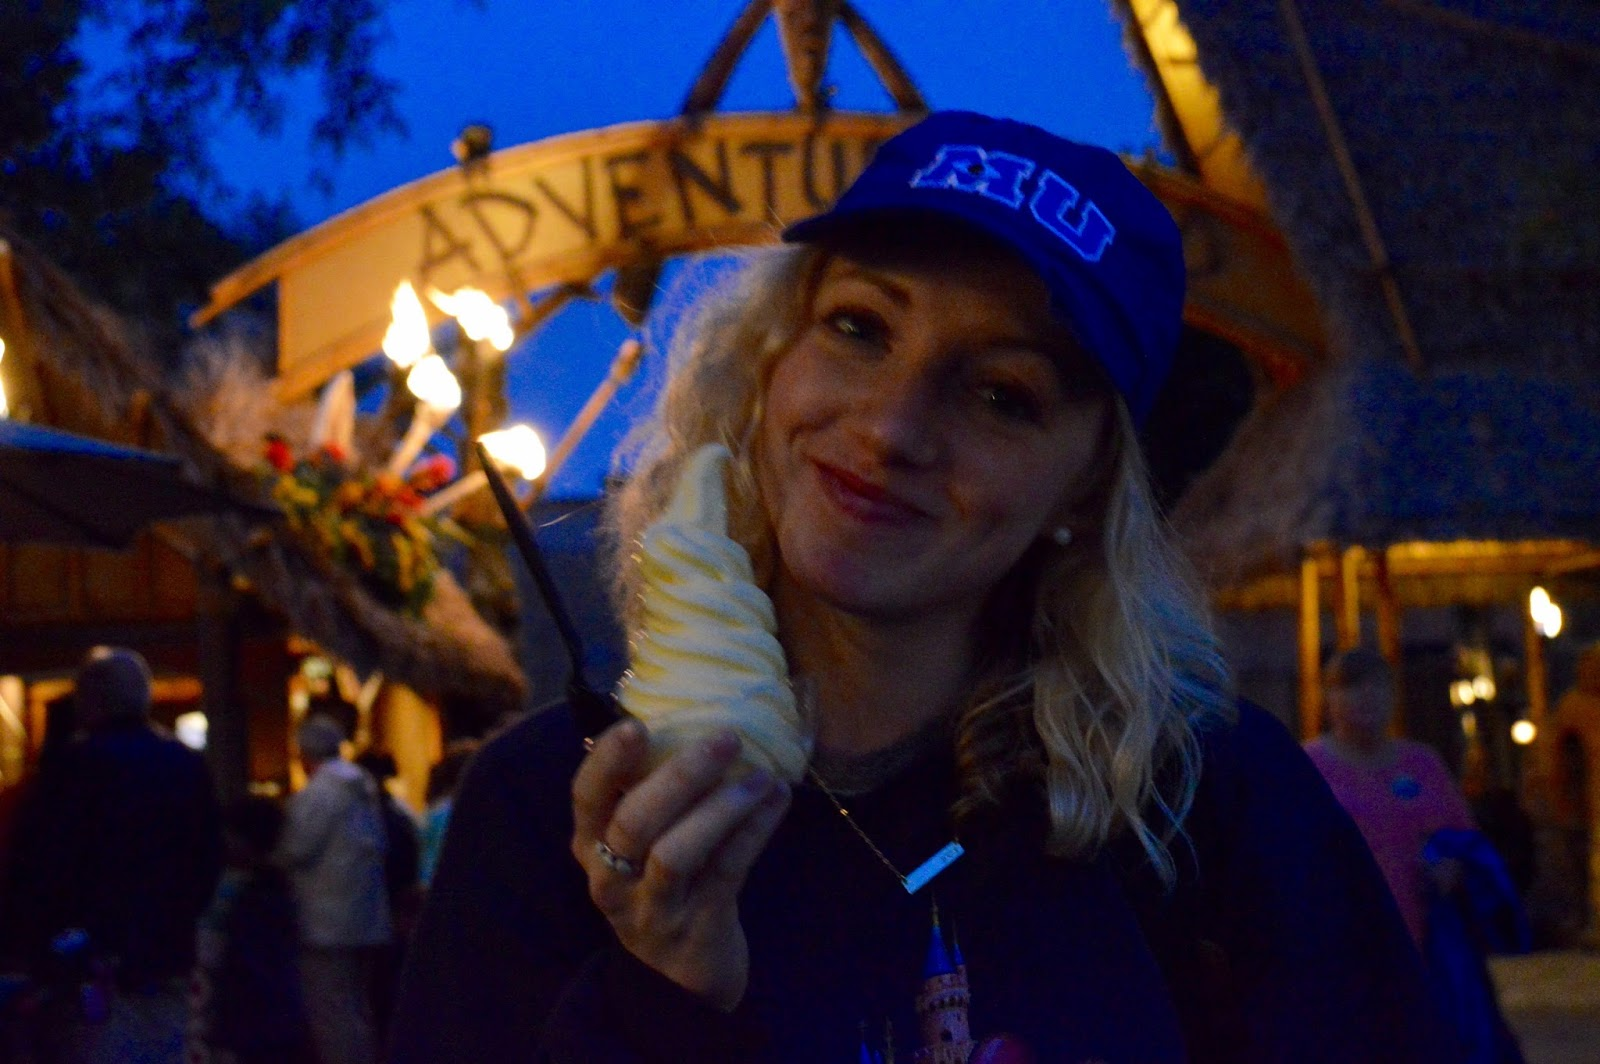 Adventureland & Dole Whip